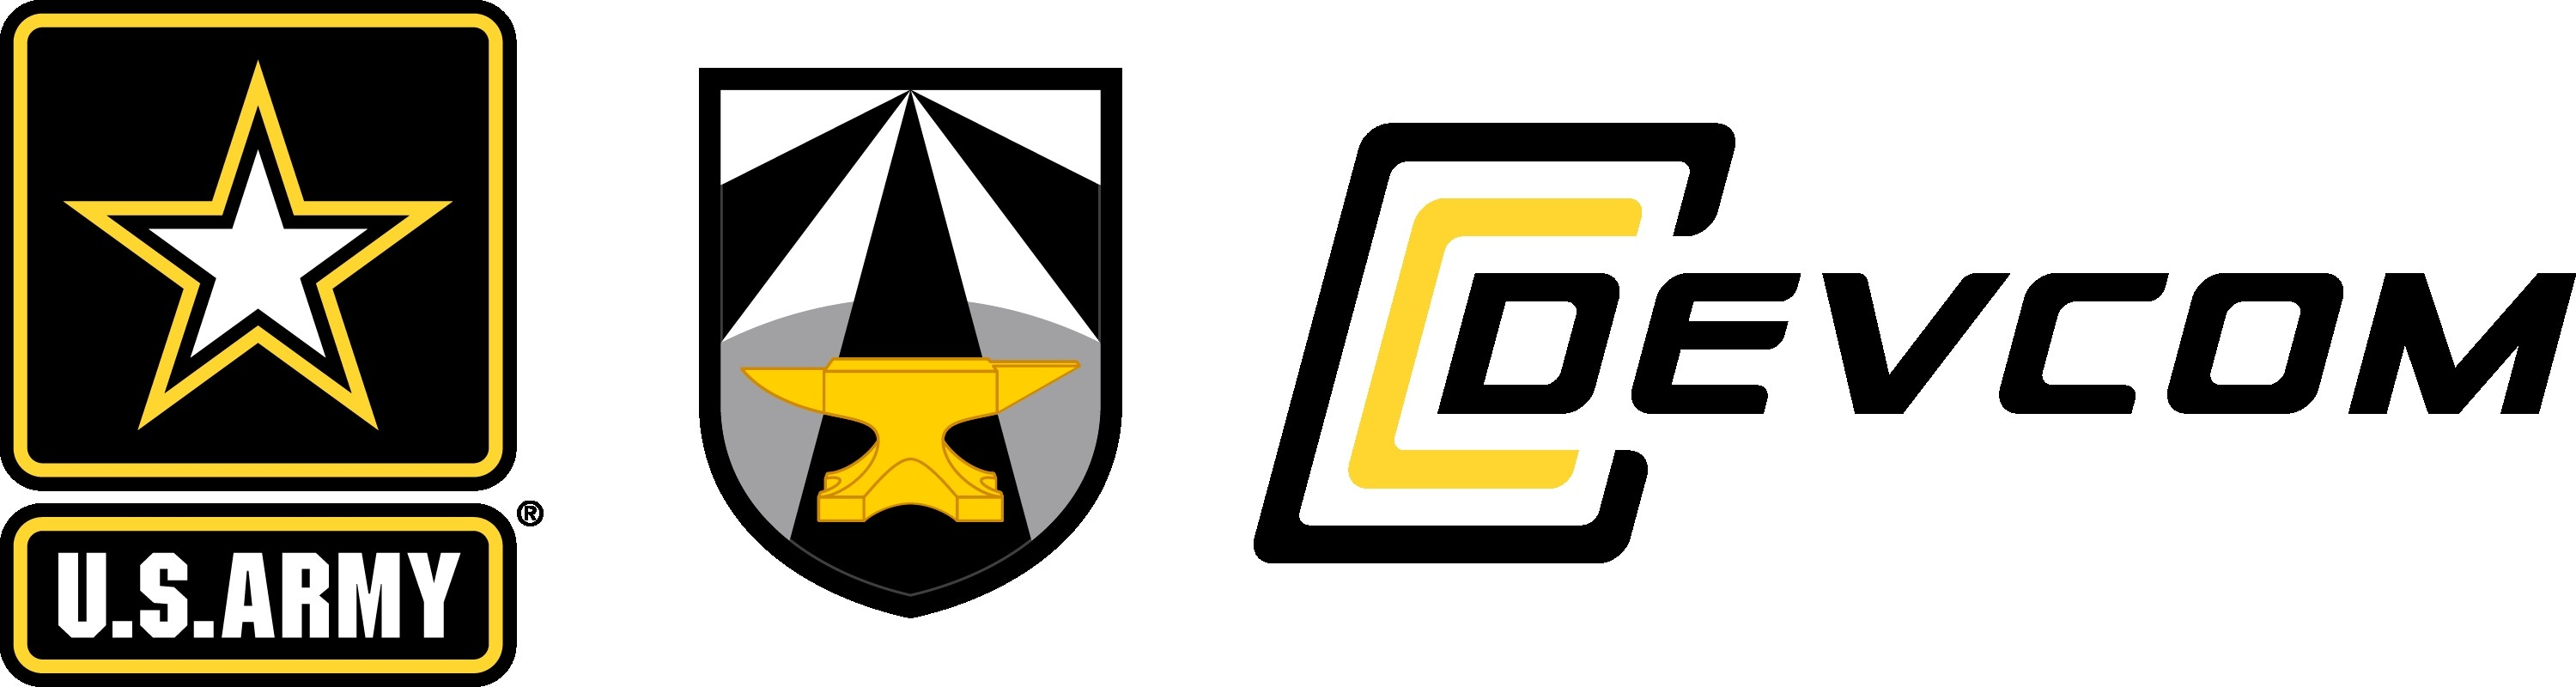 DOD Army Research Office CCDC ARL Logo